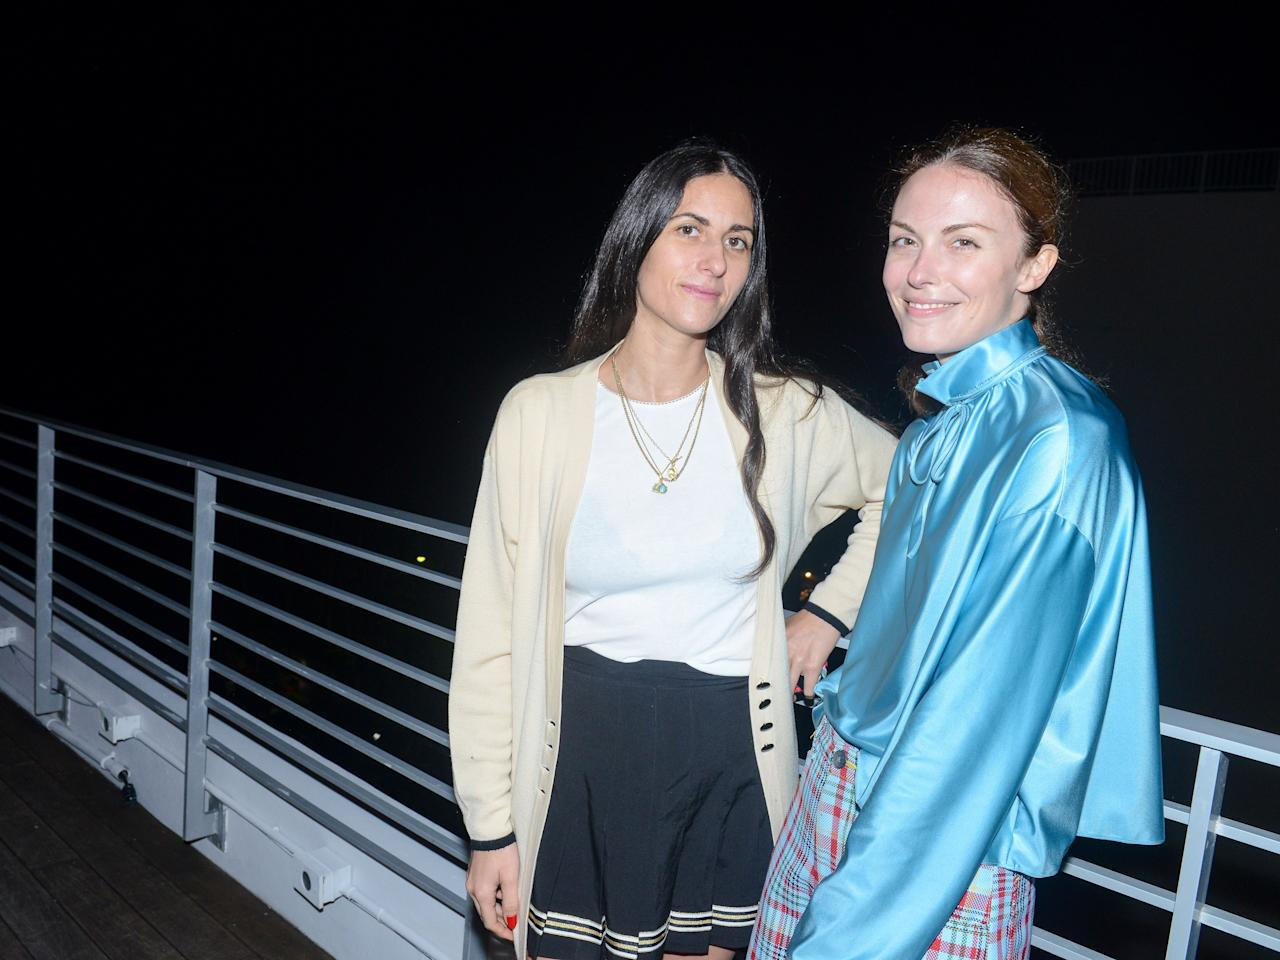 Kaylie Schiff and Sonja Mauro attend ICA Dinner For Sterling Ruby at Soho Beach House.